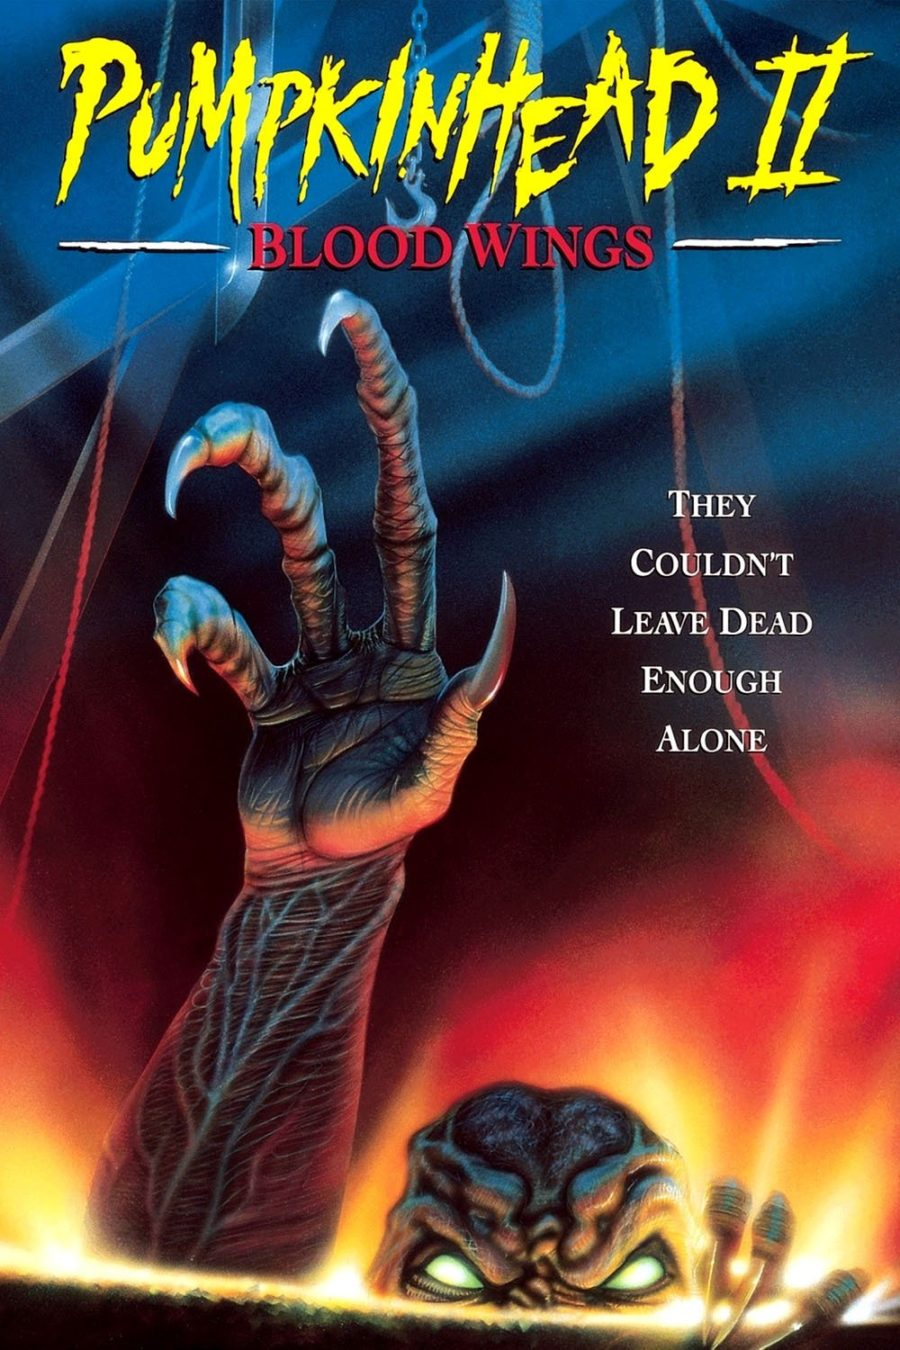 Revisiting 90s Direct-to-Video Terror PUMPKINHEAD II: BLOOD WINGS